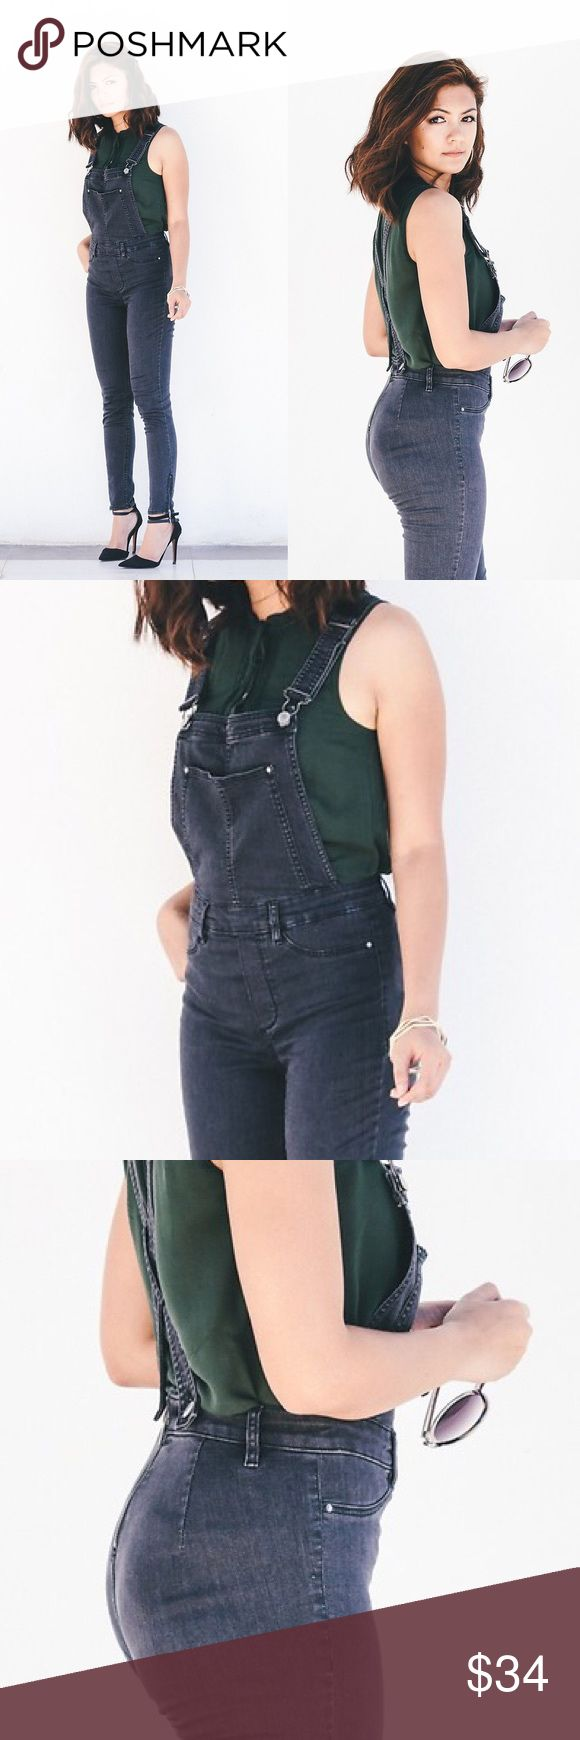 H&M Washed Out Black Skinny Ankle Overalls Size 4 Worn only once. Washed out look just like in the photos. Side zip ankles. These are super cute I got them thinking I can be an overalls girl but I'm just not. Lol. Would be a great addition for whomever does wear them. True h&m US Size 4. H&M Pants Ankle & Cropped